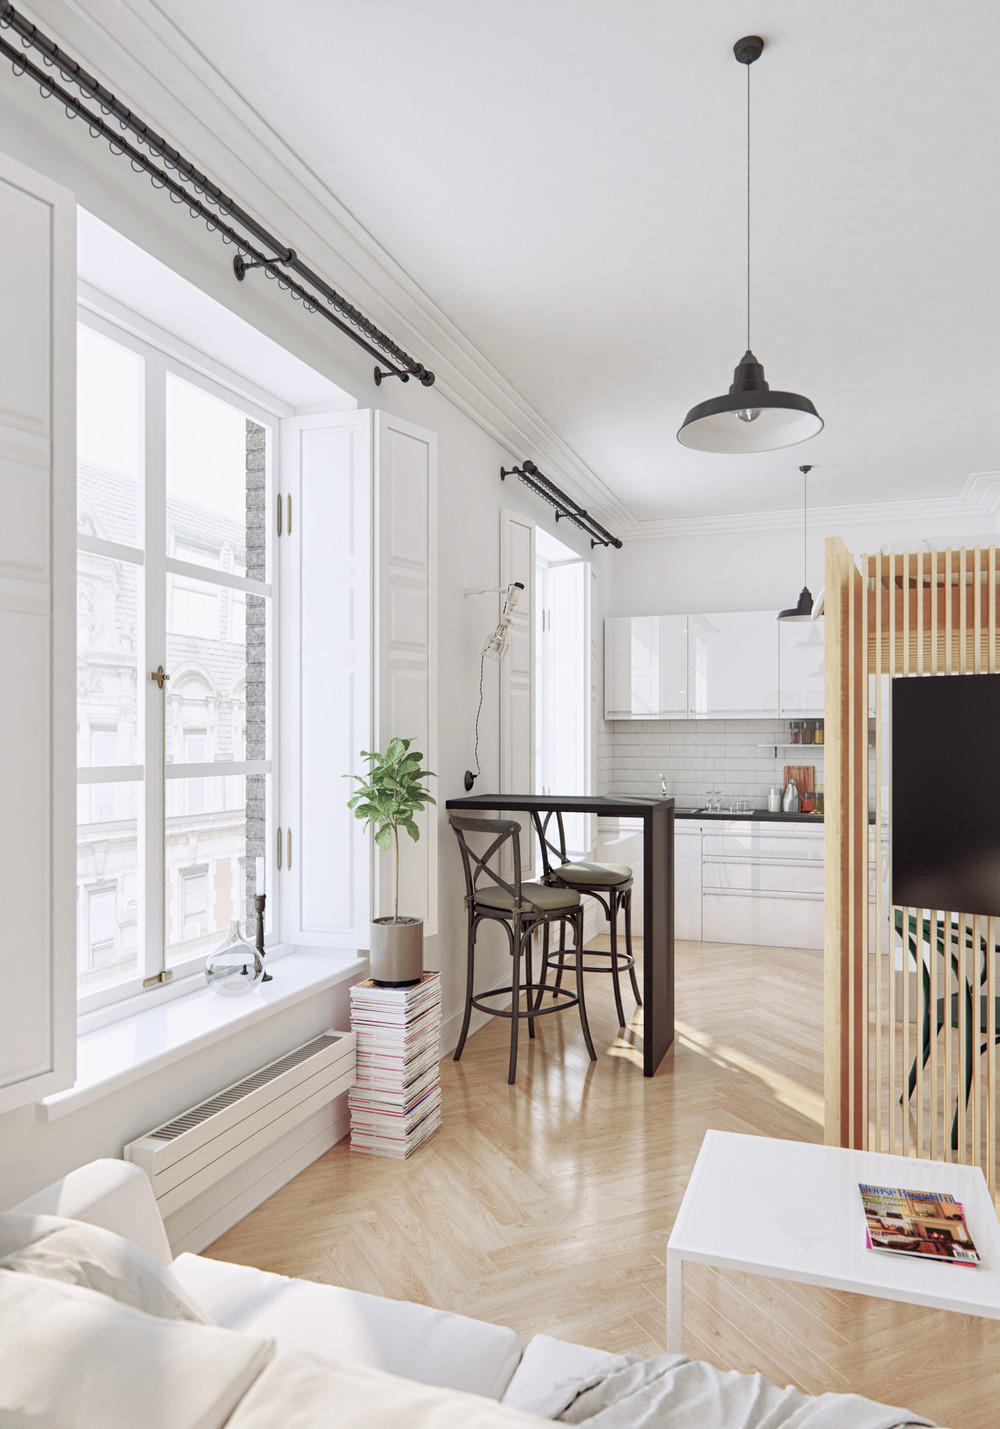 Modern Classic Interior Design: 4 Small Apartments Showcase The Flexibility Of Compact Design